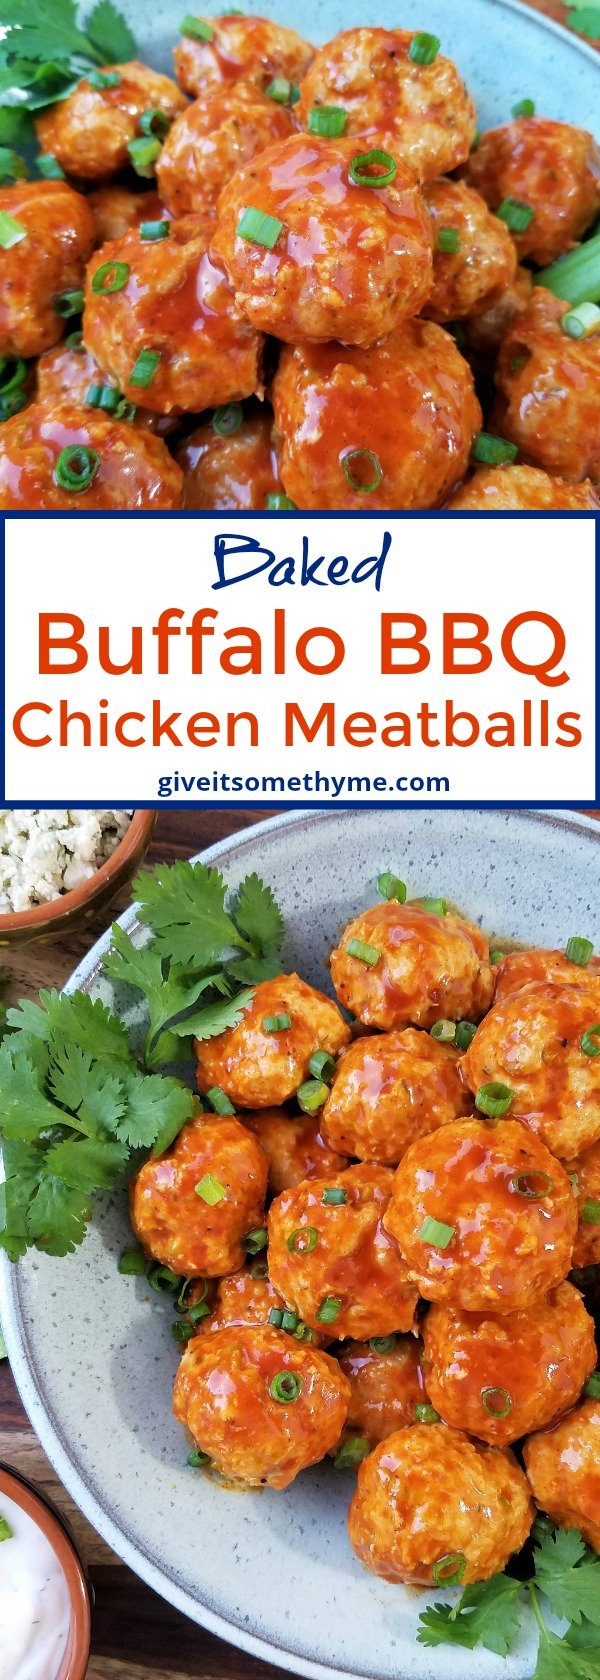 Buffalo BBQ Chicken Meatballs - Give it Some Thyme